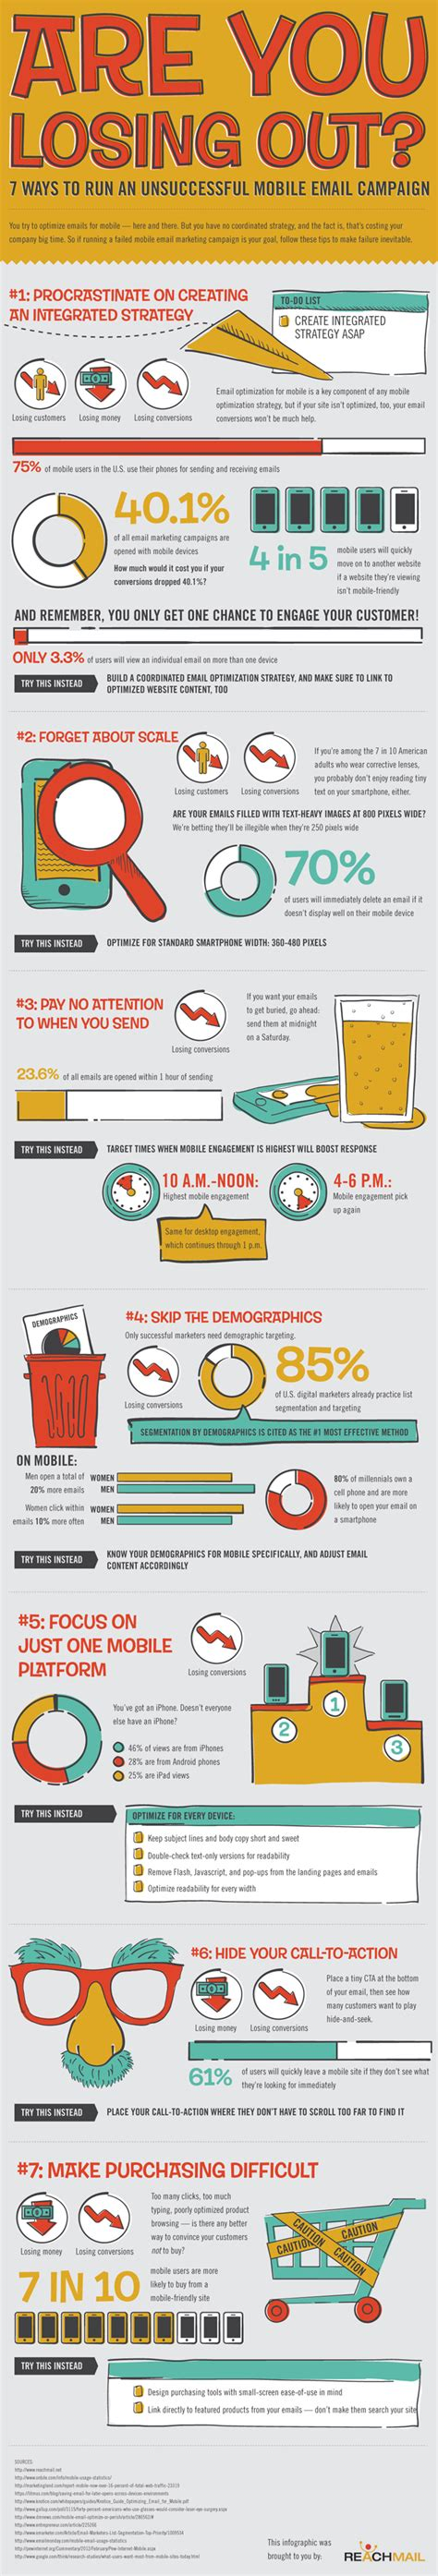 mobile email marketing mobile email marketing fails infographic new media and